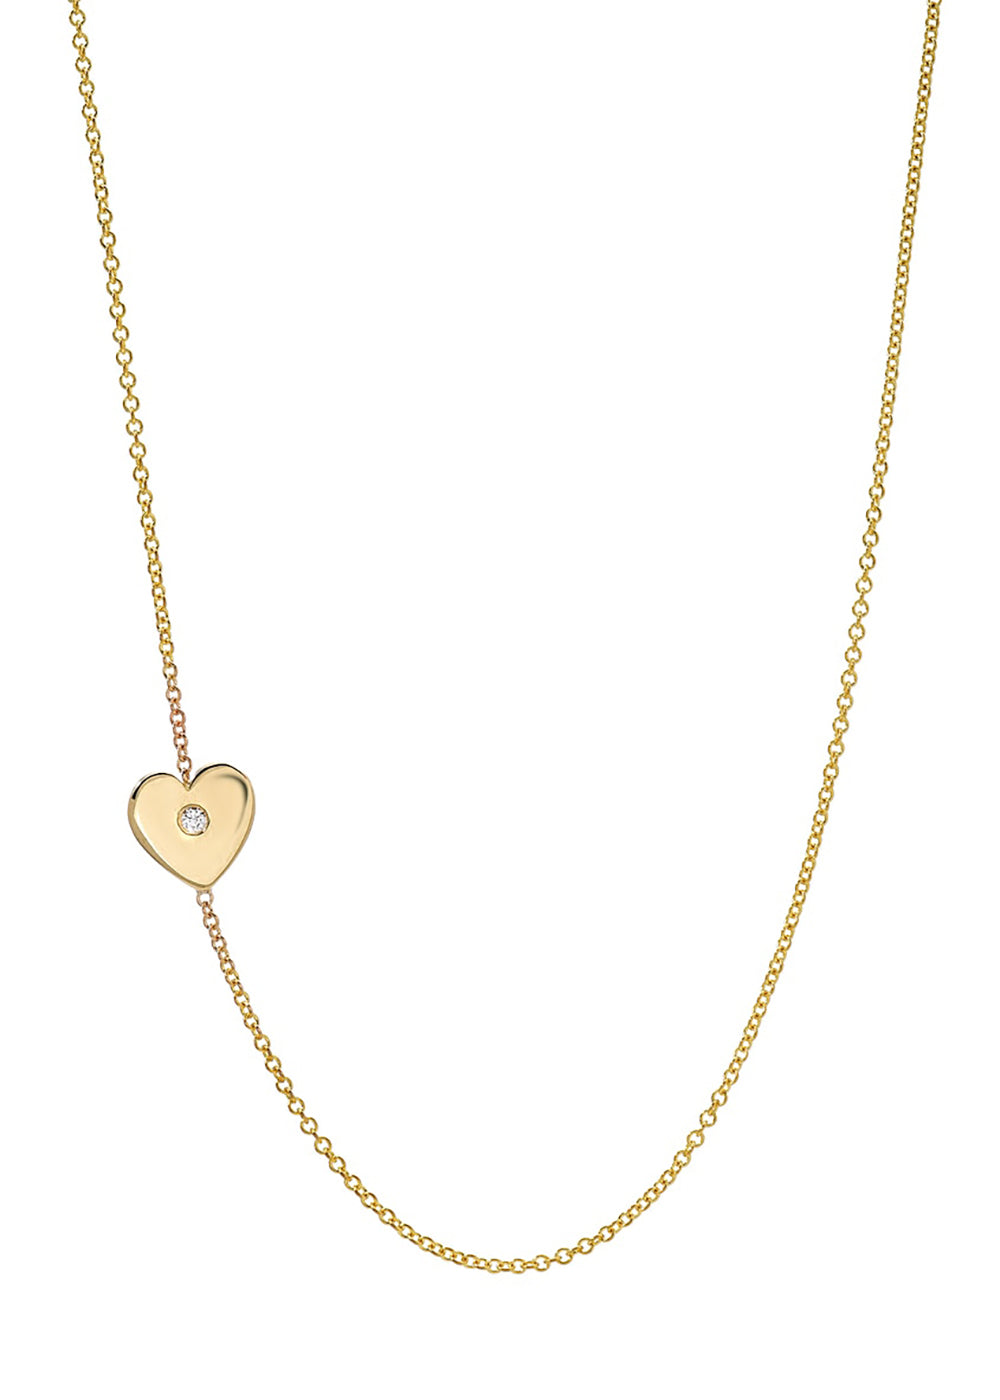 Zoe 14K Dimond Heart Necklace in Yellow Gold